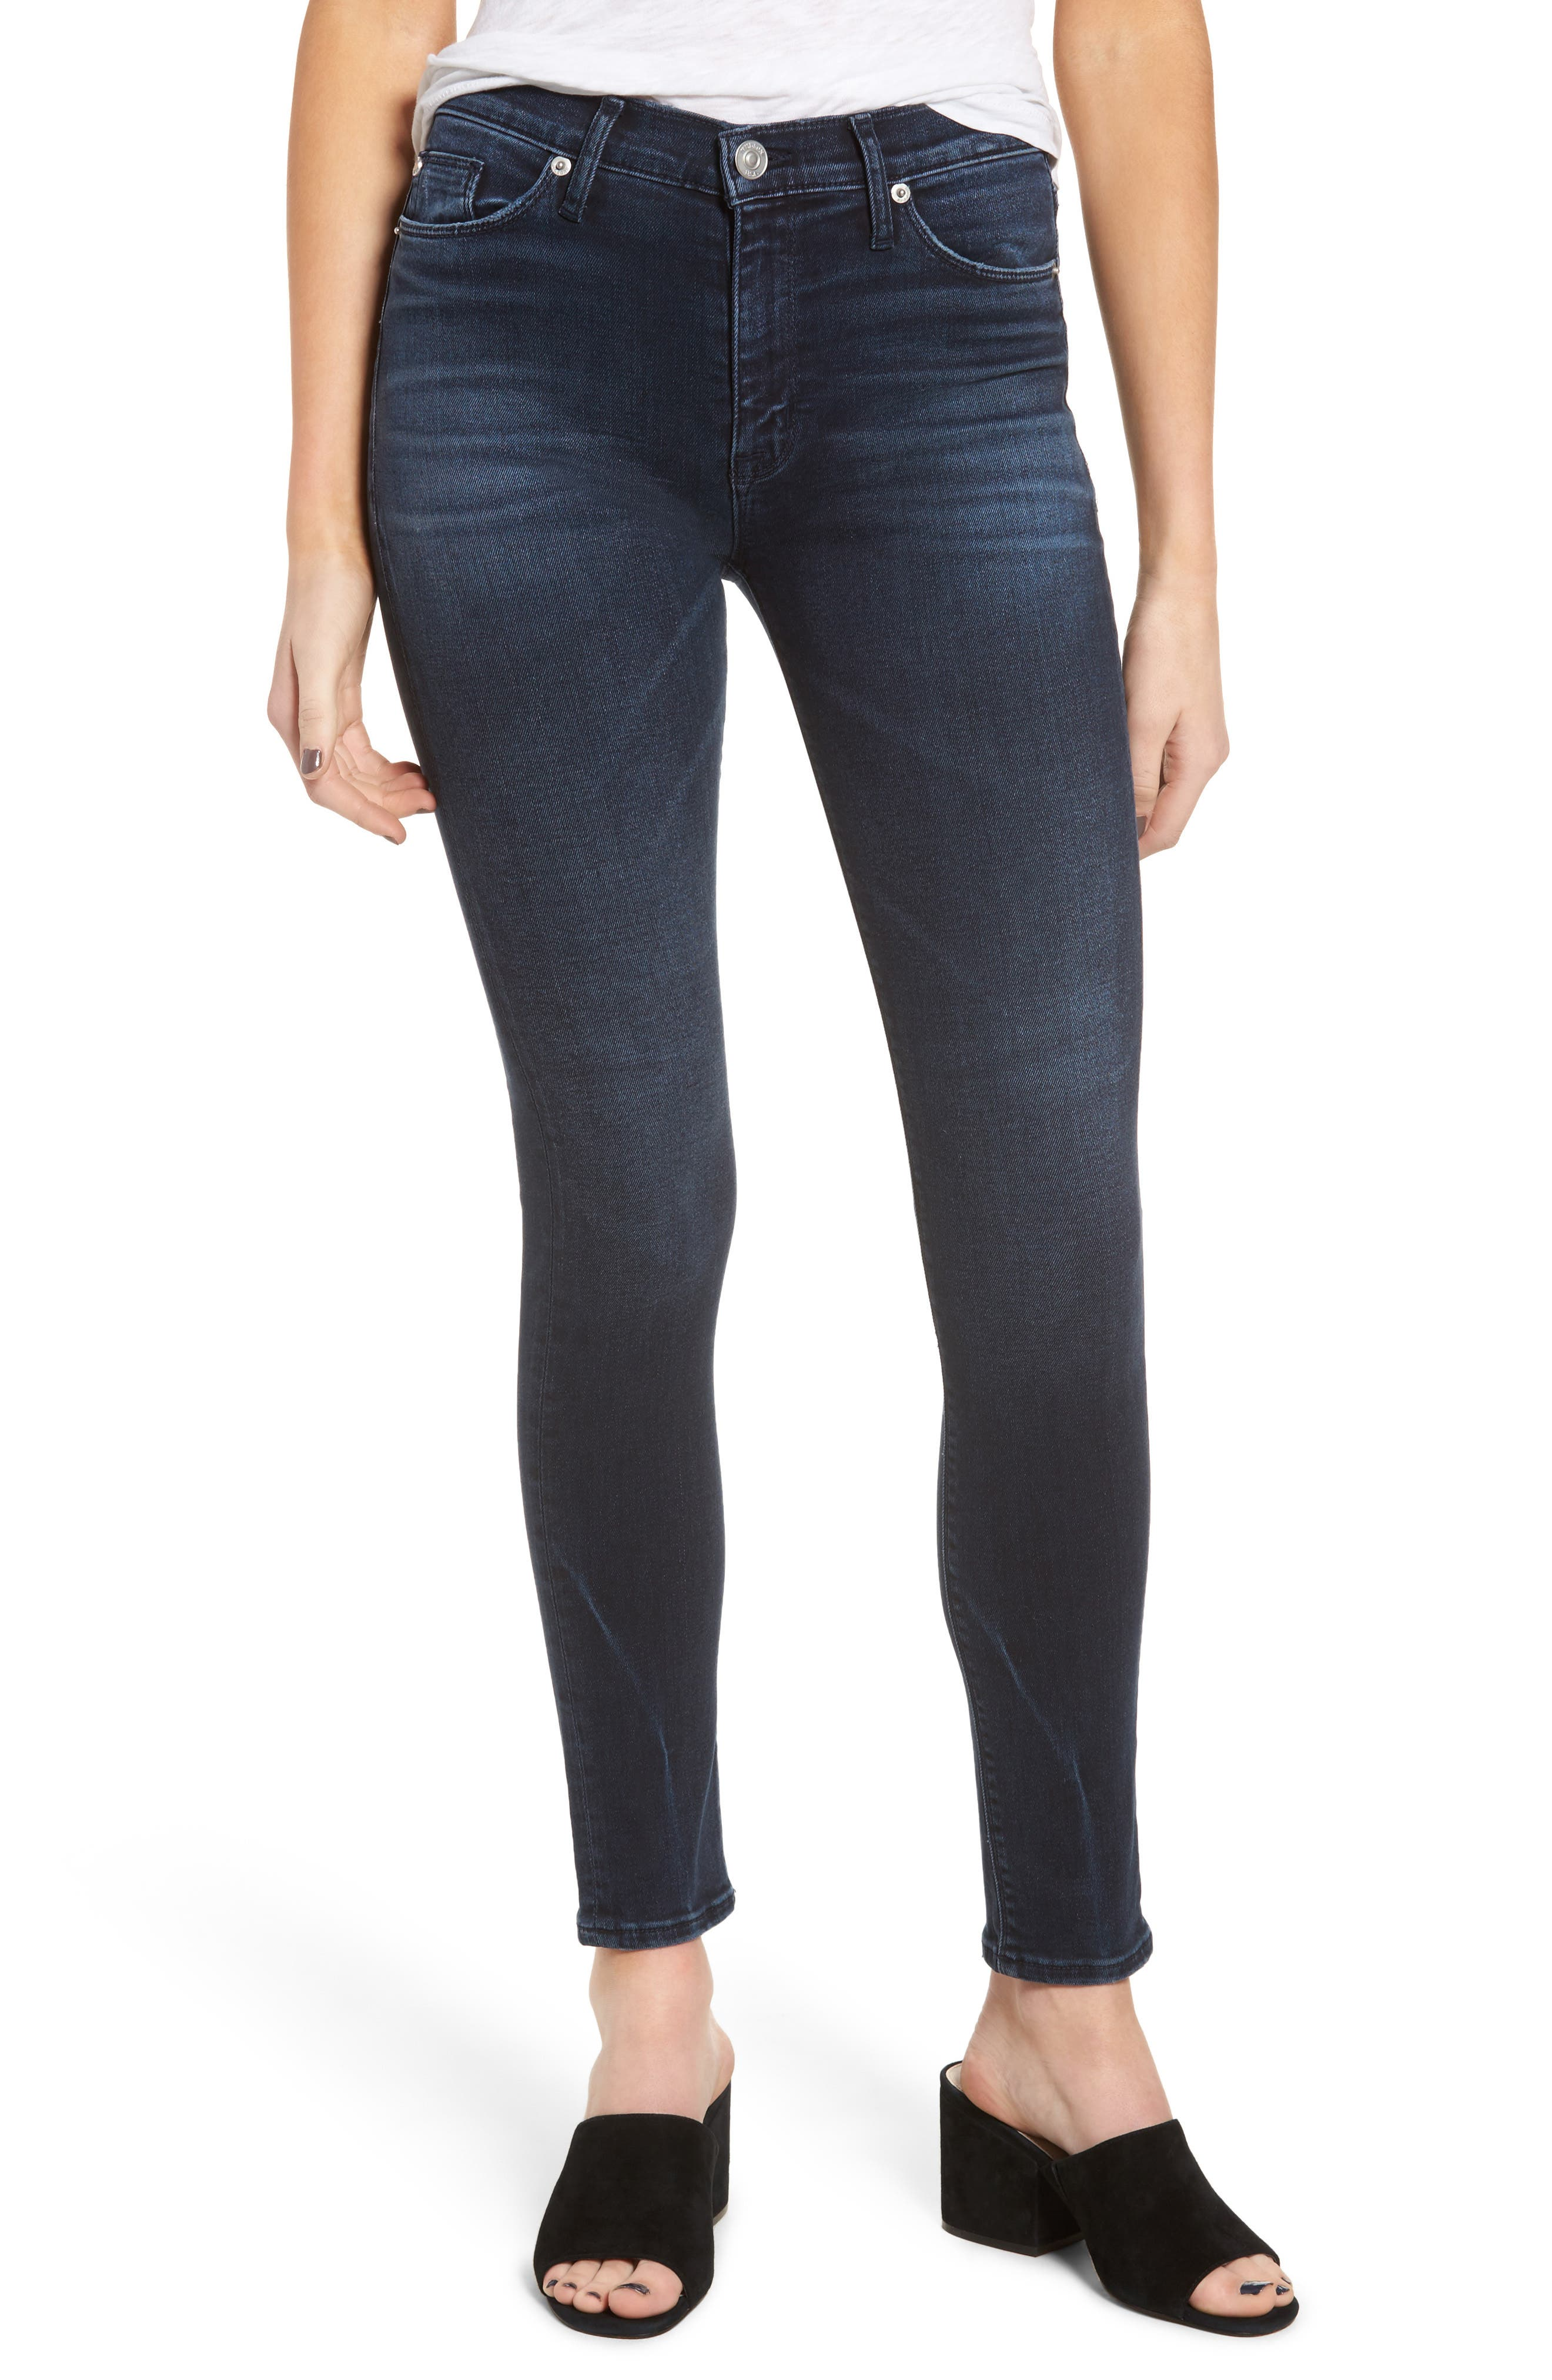 Hudson Barbara High Waist Super Skinny Jeans,                             Main thumbnail 1, color,                             Night Ryder